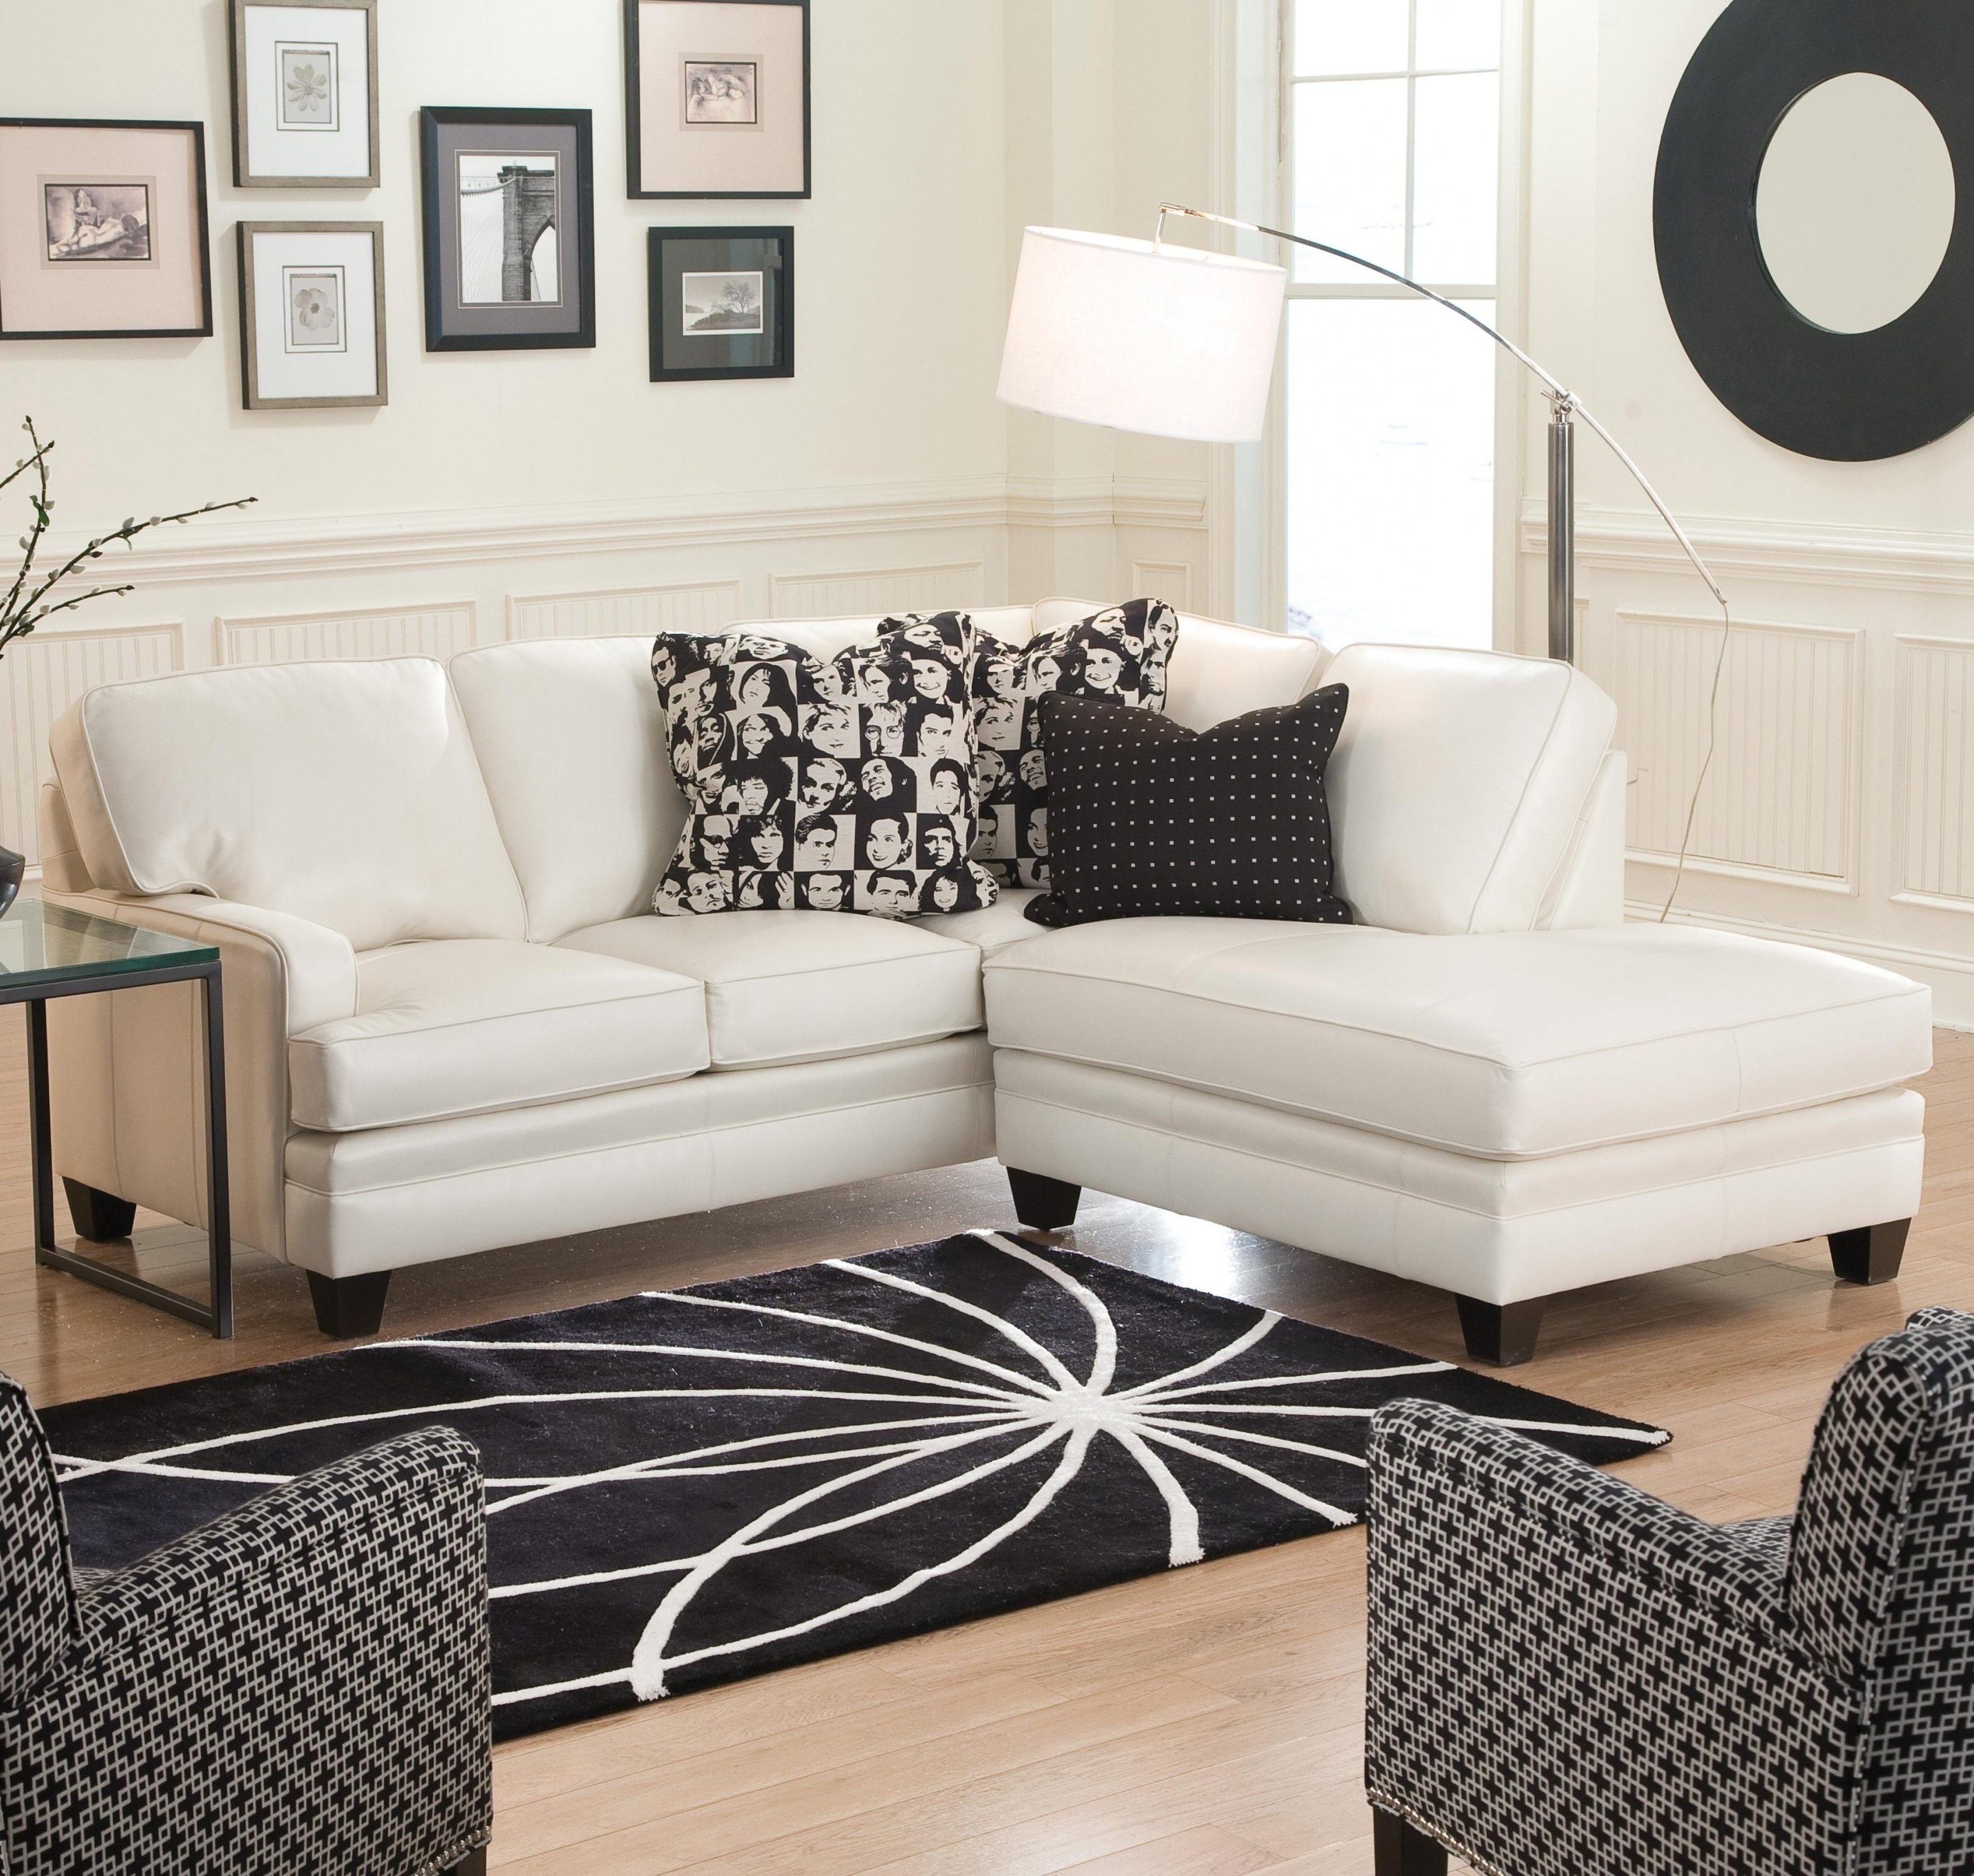 Popular Modern Sectional Sofas For Small Spaces Inside Room : Best Small Modern Sectionals 3 Piece Sectional Sofa With (View 16 of 20)